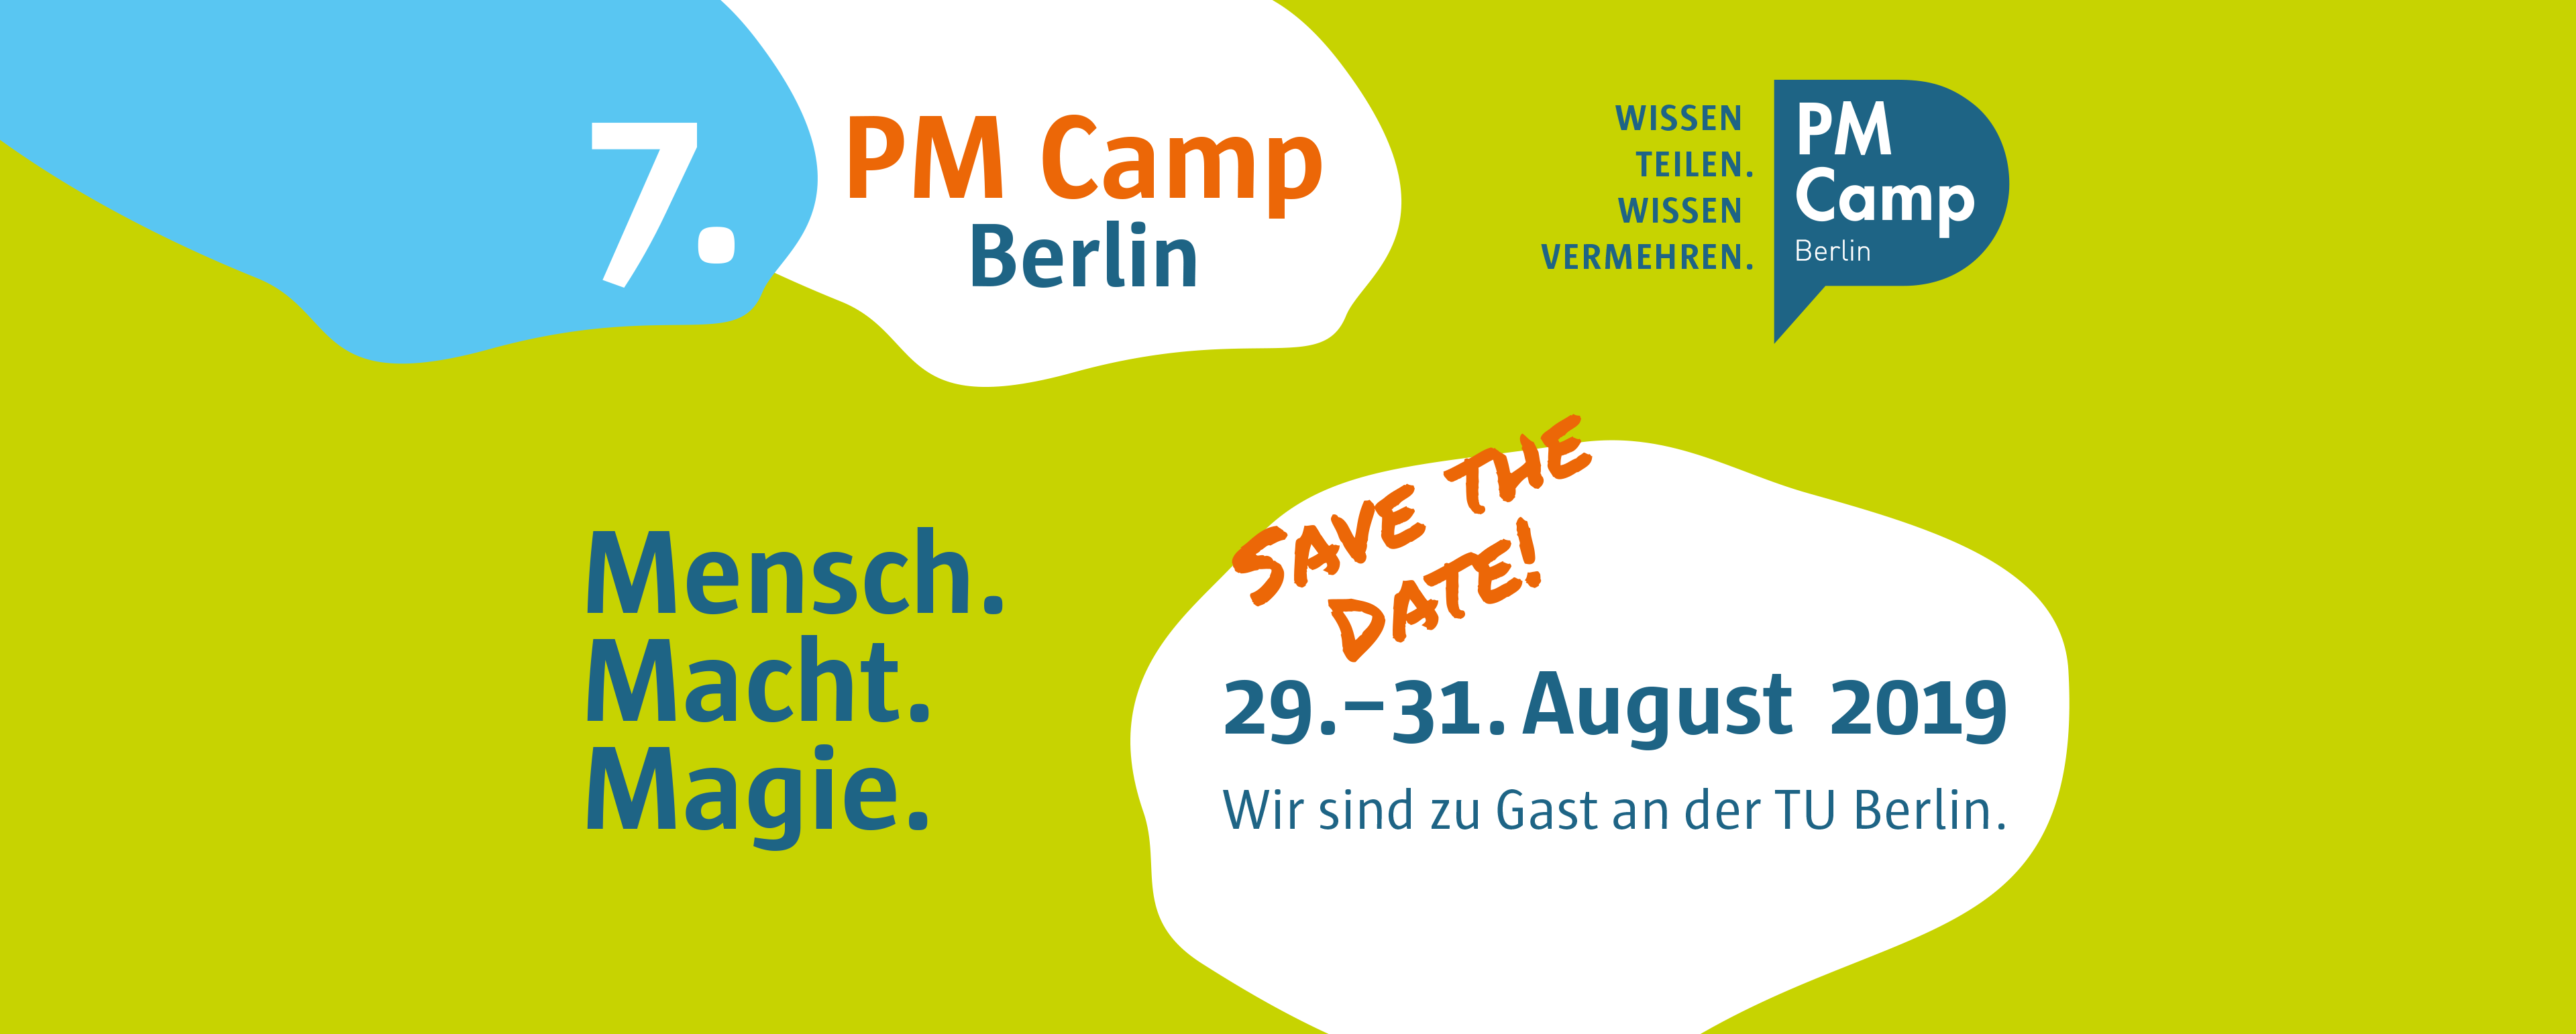 PM CAMP BER 6 SAVE THE DATE